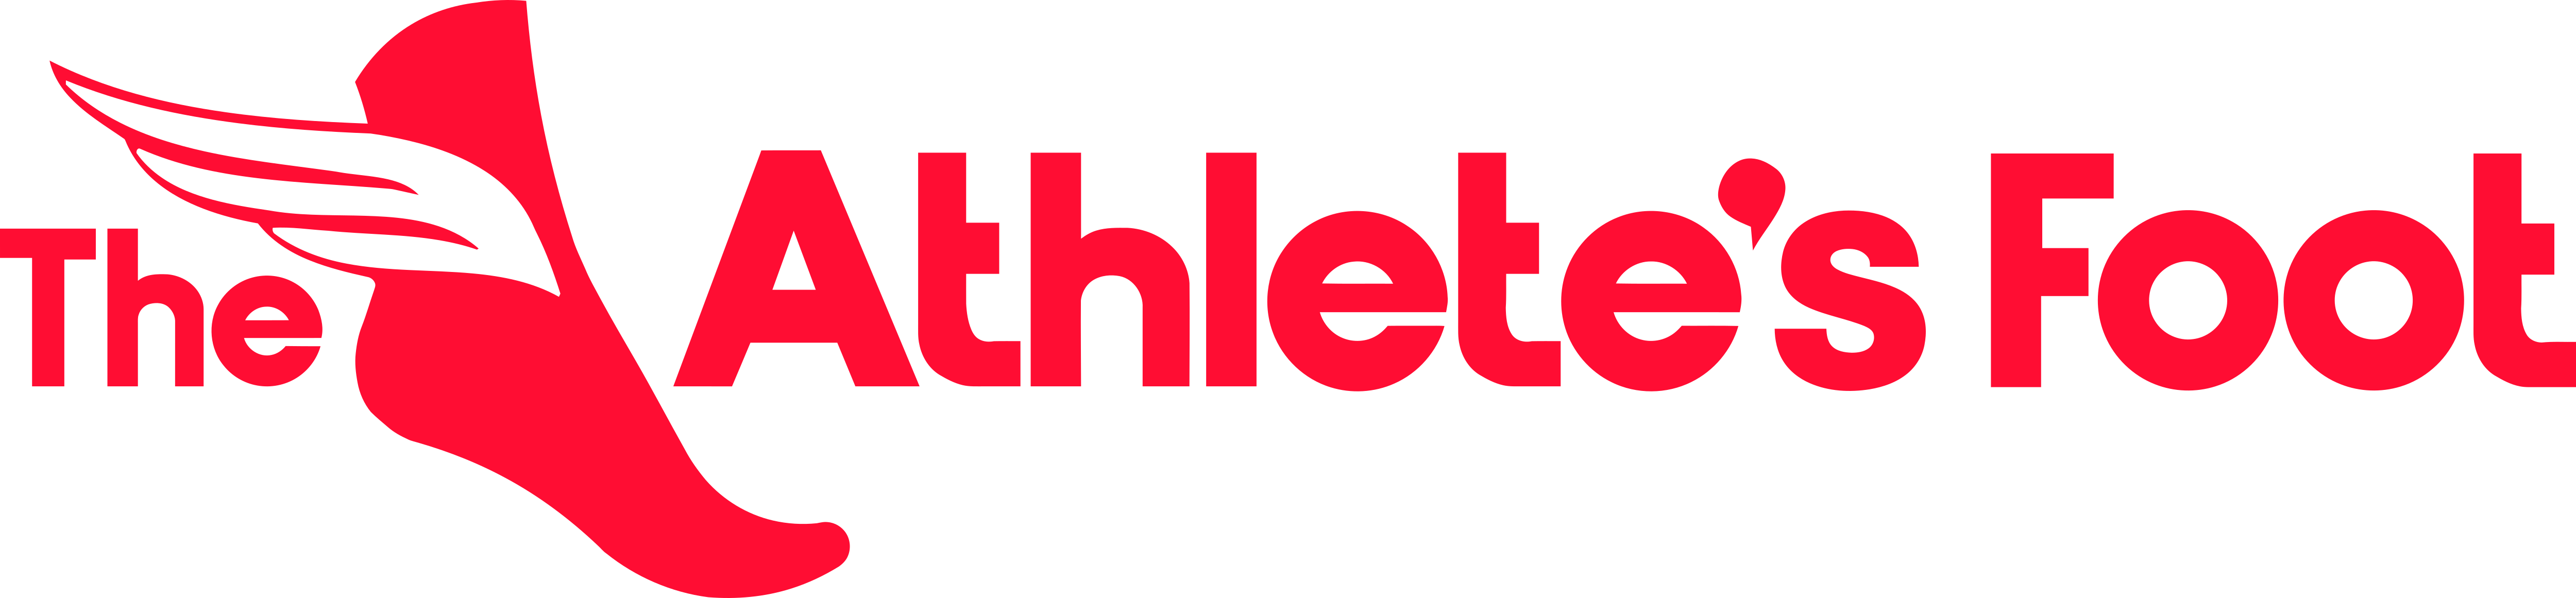 The Athlete's Foot – Logos Download